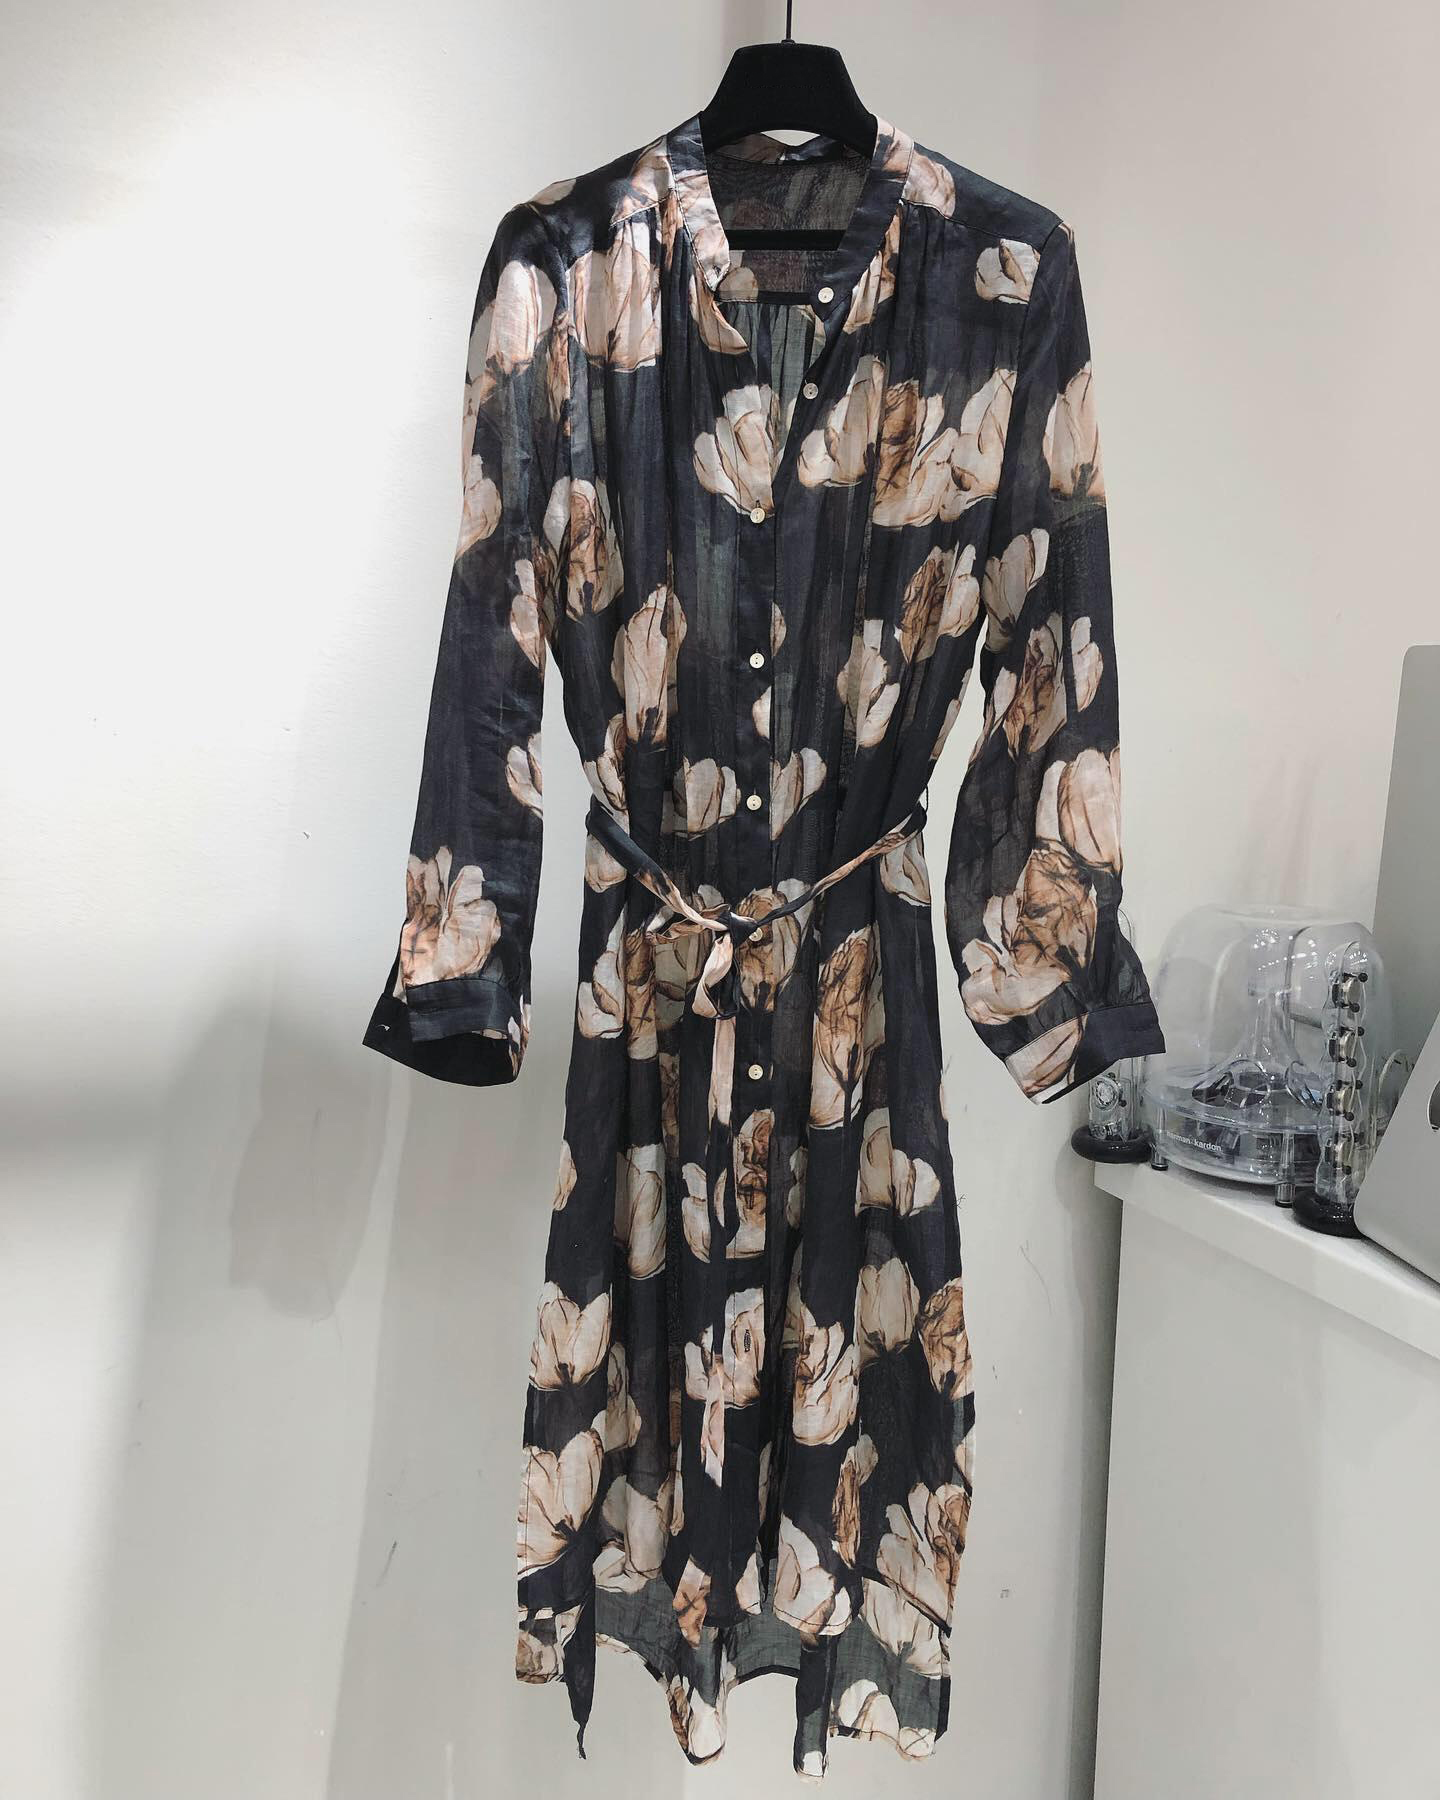 2019 new ladies fashion long sleeved stand collar retro lace print dress 0612-in Dresses from Women's Clothing    1